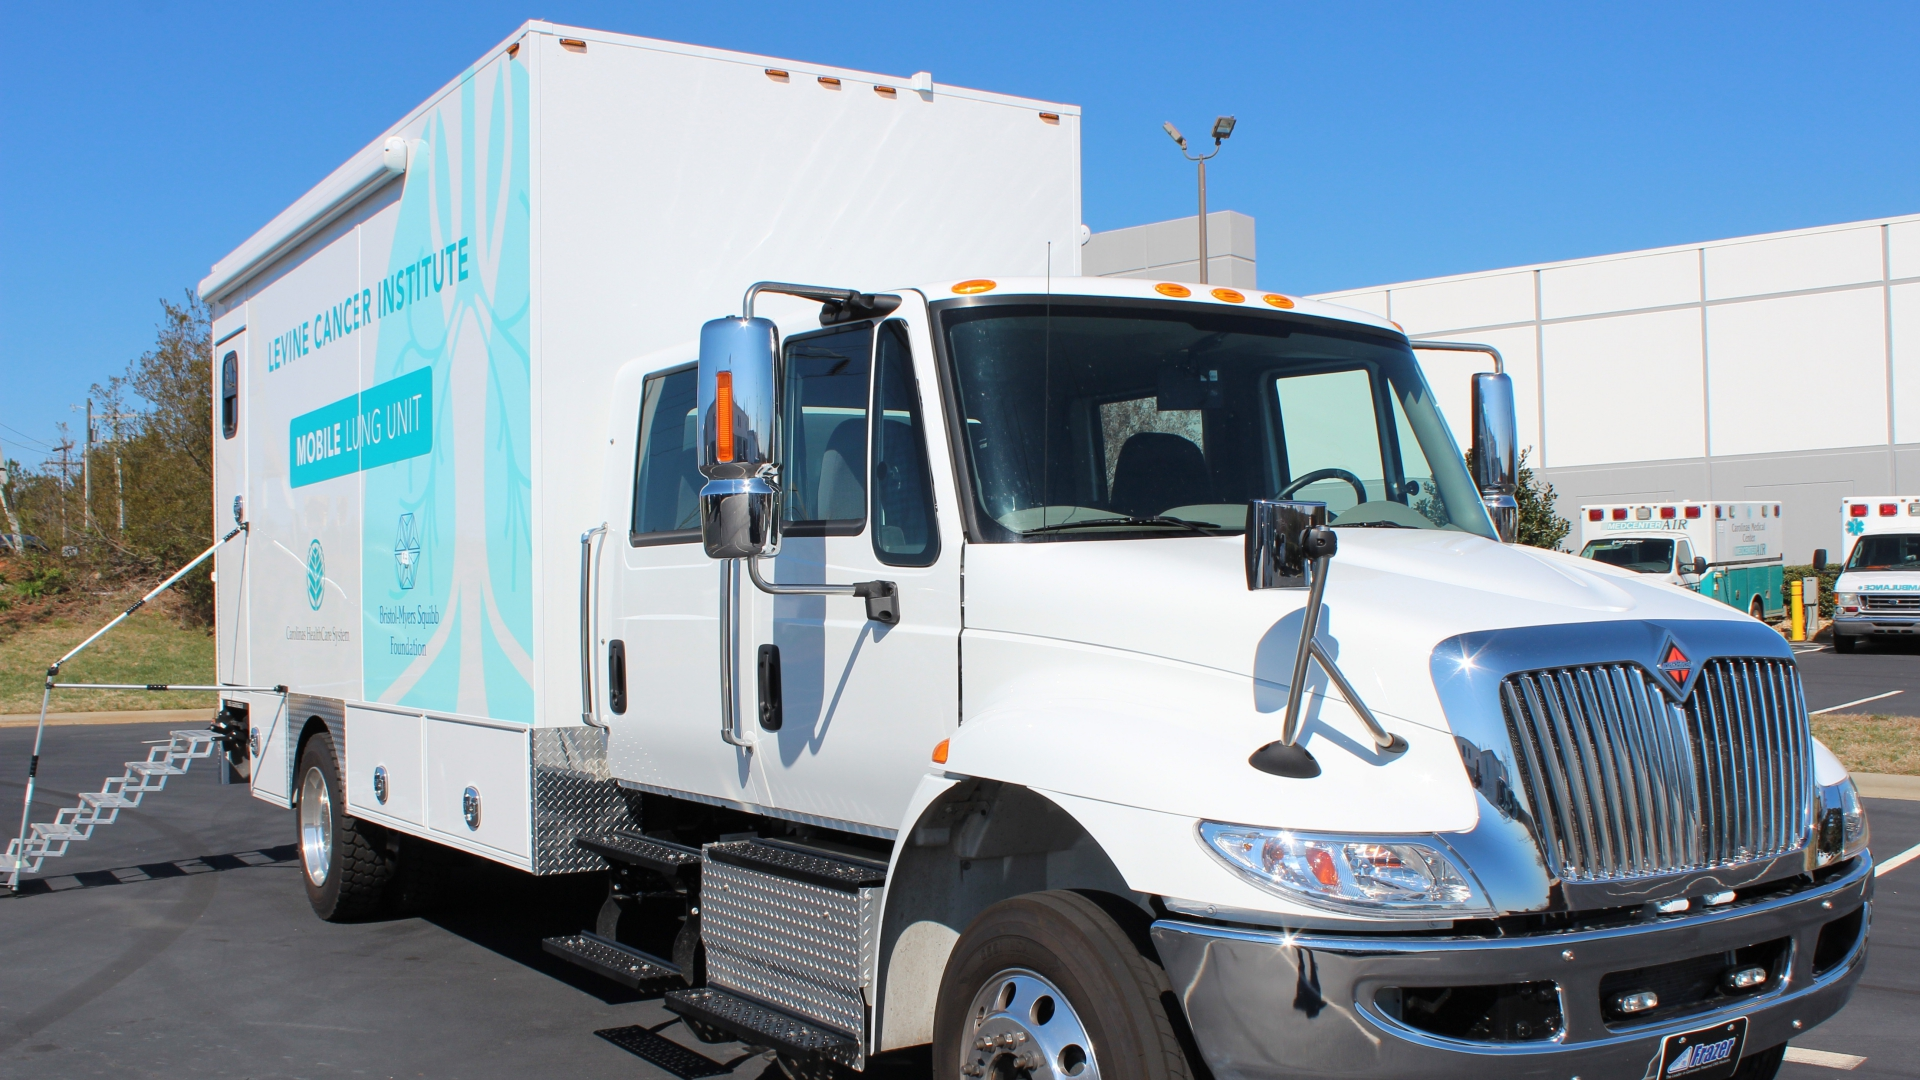 Levine Cancer Institute built the nation's first mobile lung cancer screening unit to help save lives. For Herbert Buff, that's exactly what it did.